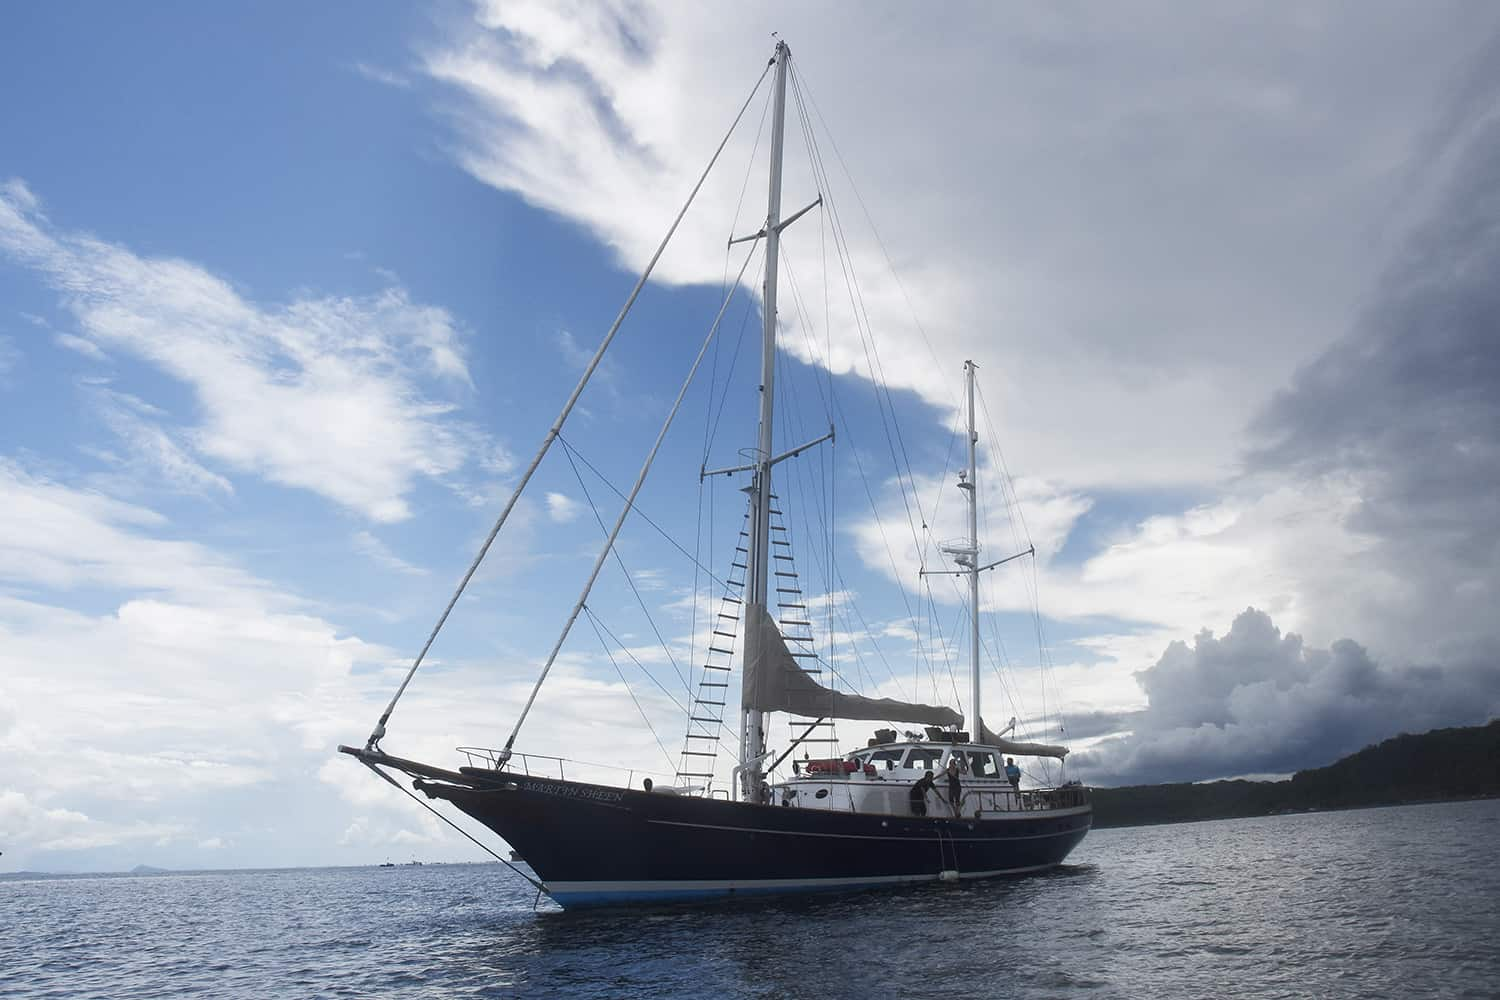 Sea Shepherd's R/V Martin Sheen.